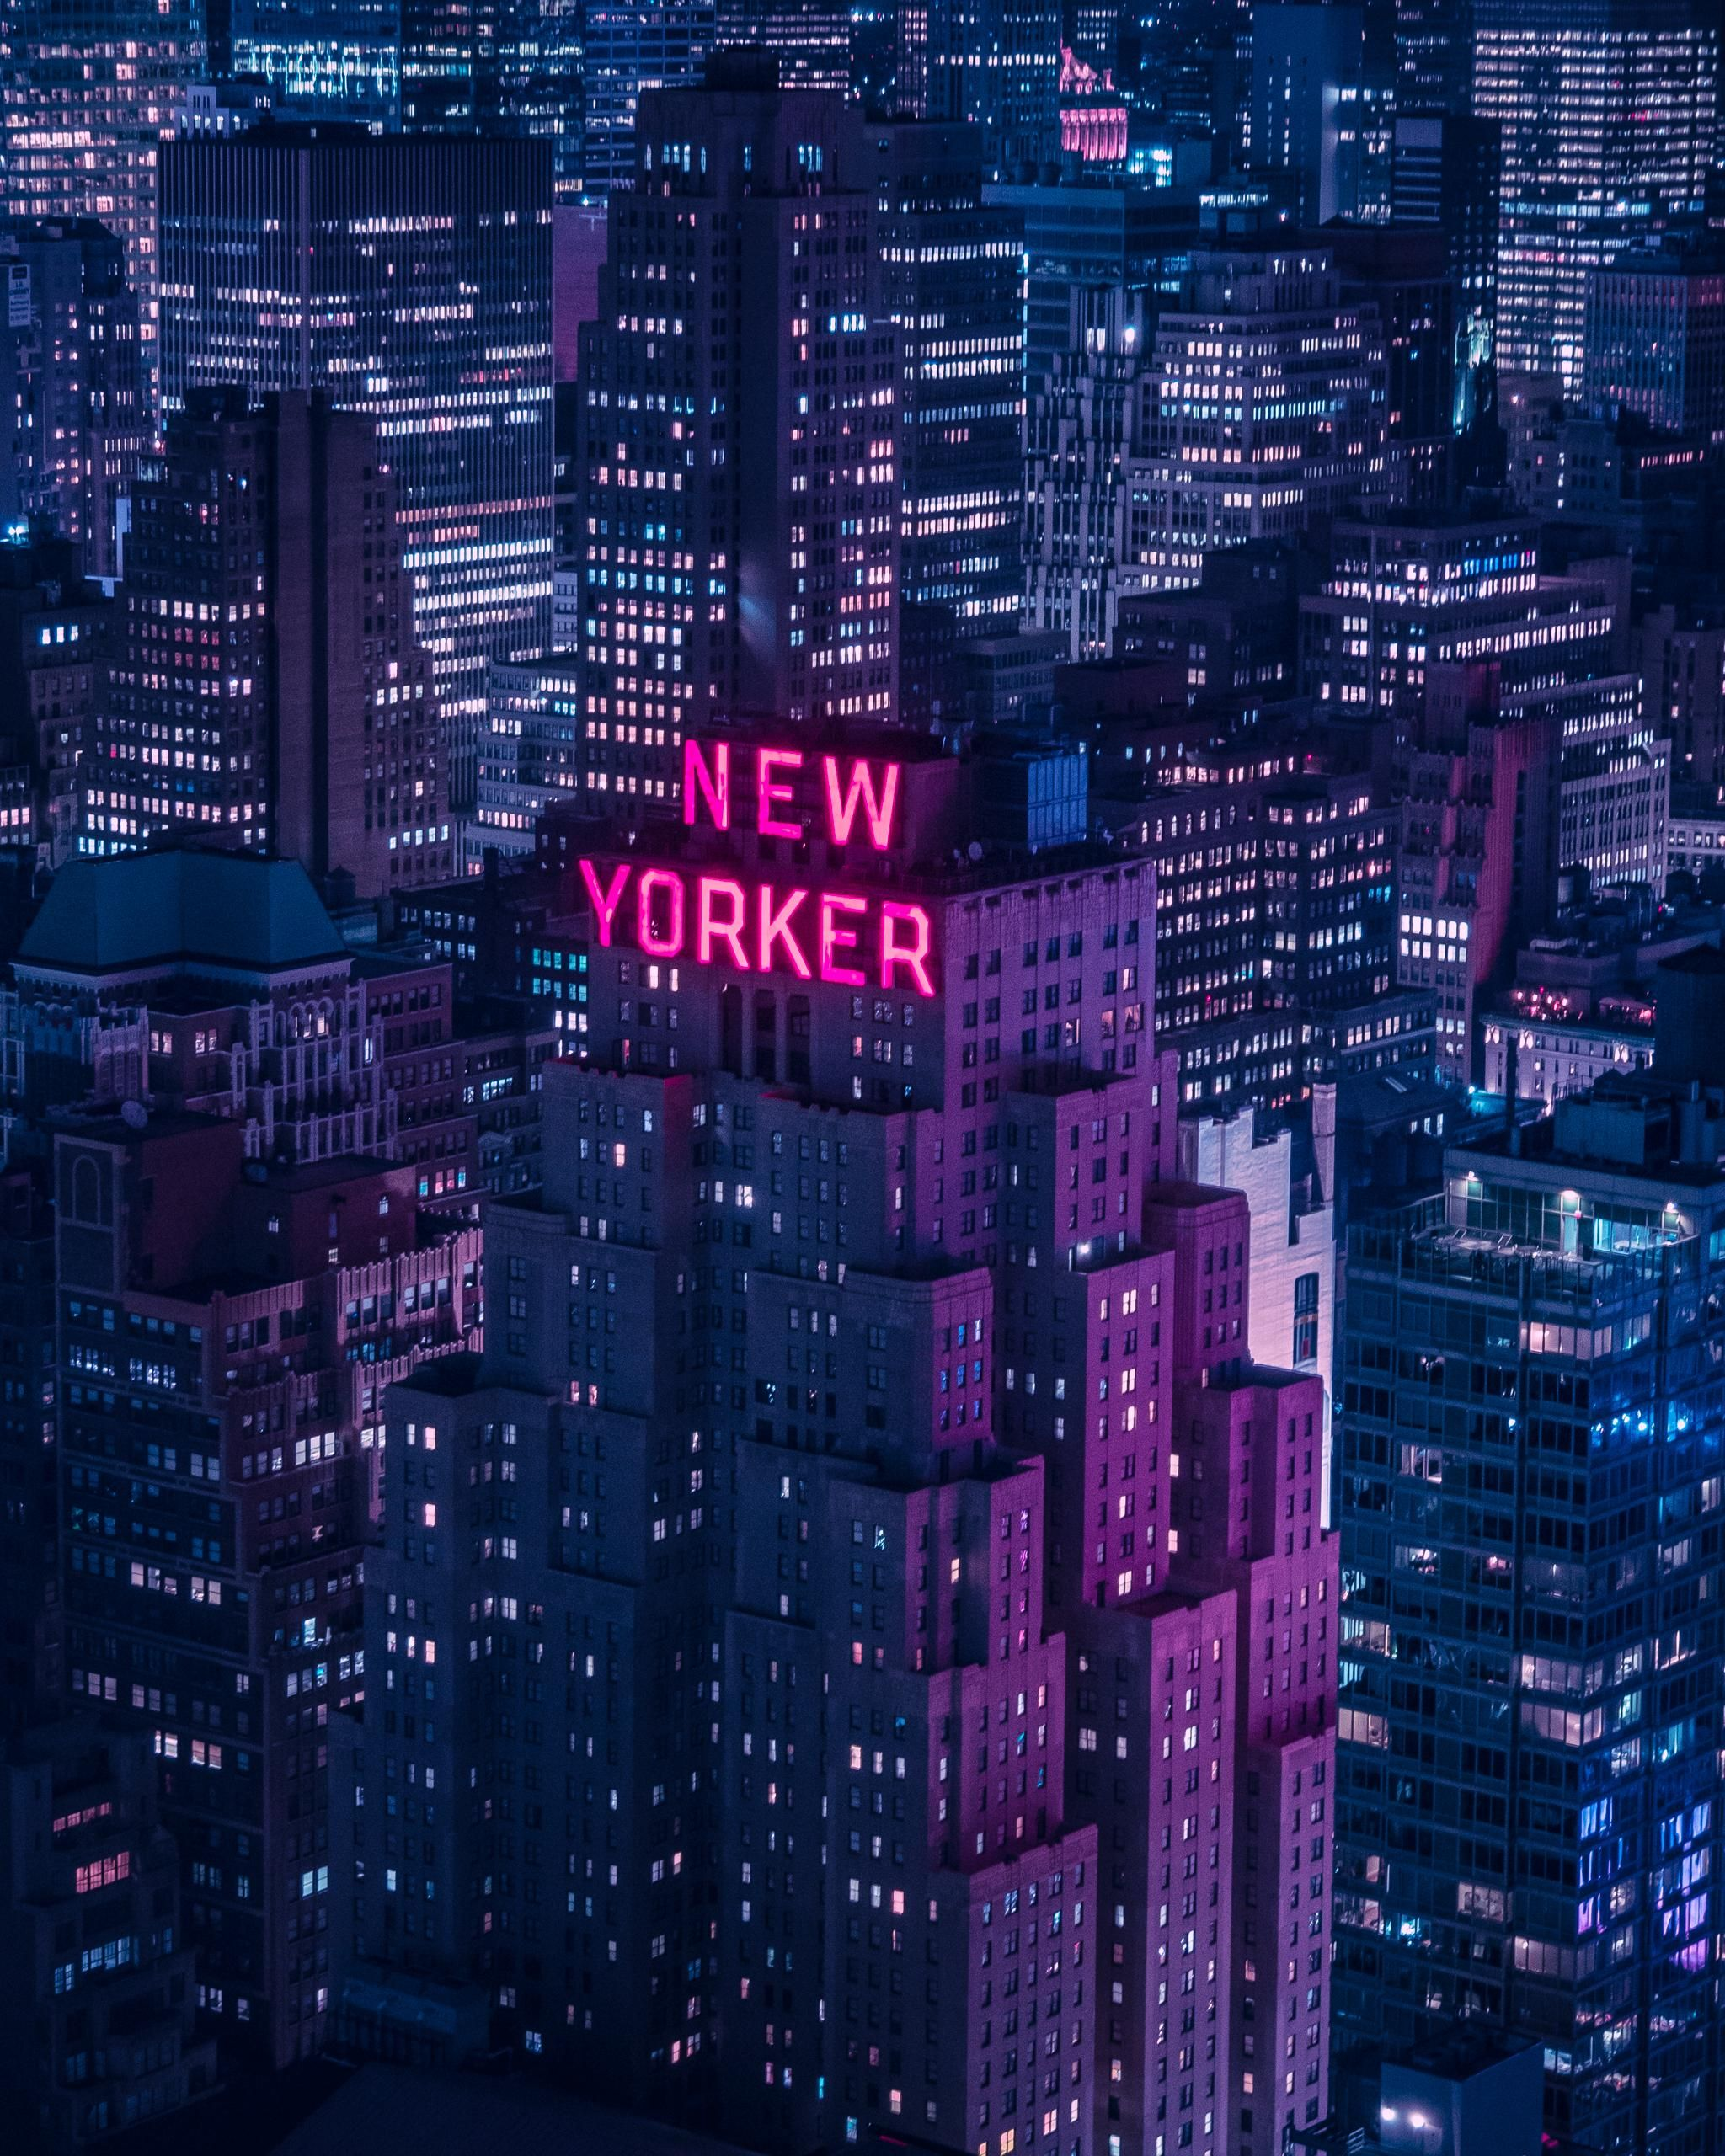 New York Oc 2048 2560 Building Aesthetic City Aesthetic Photo Wall Collage